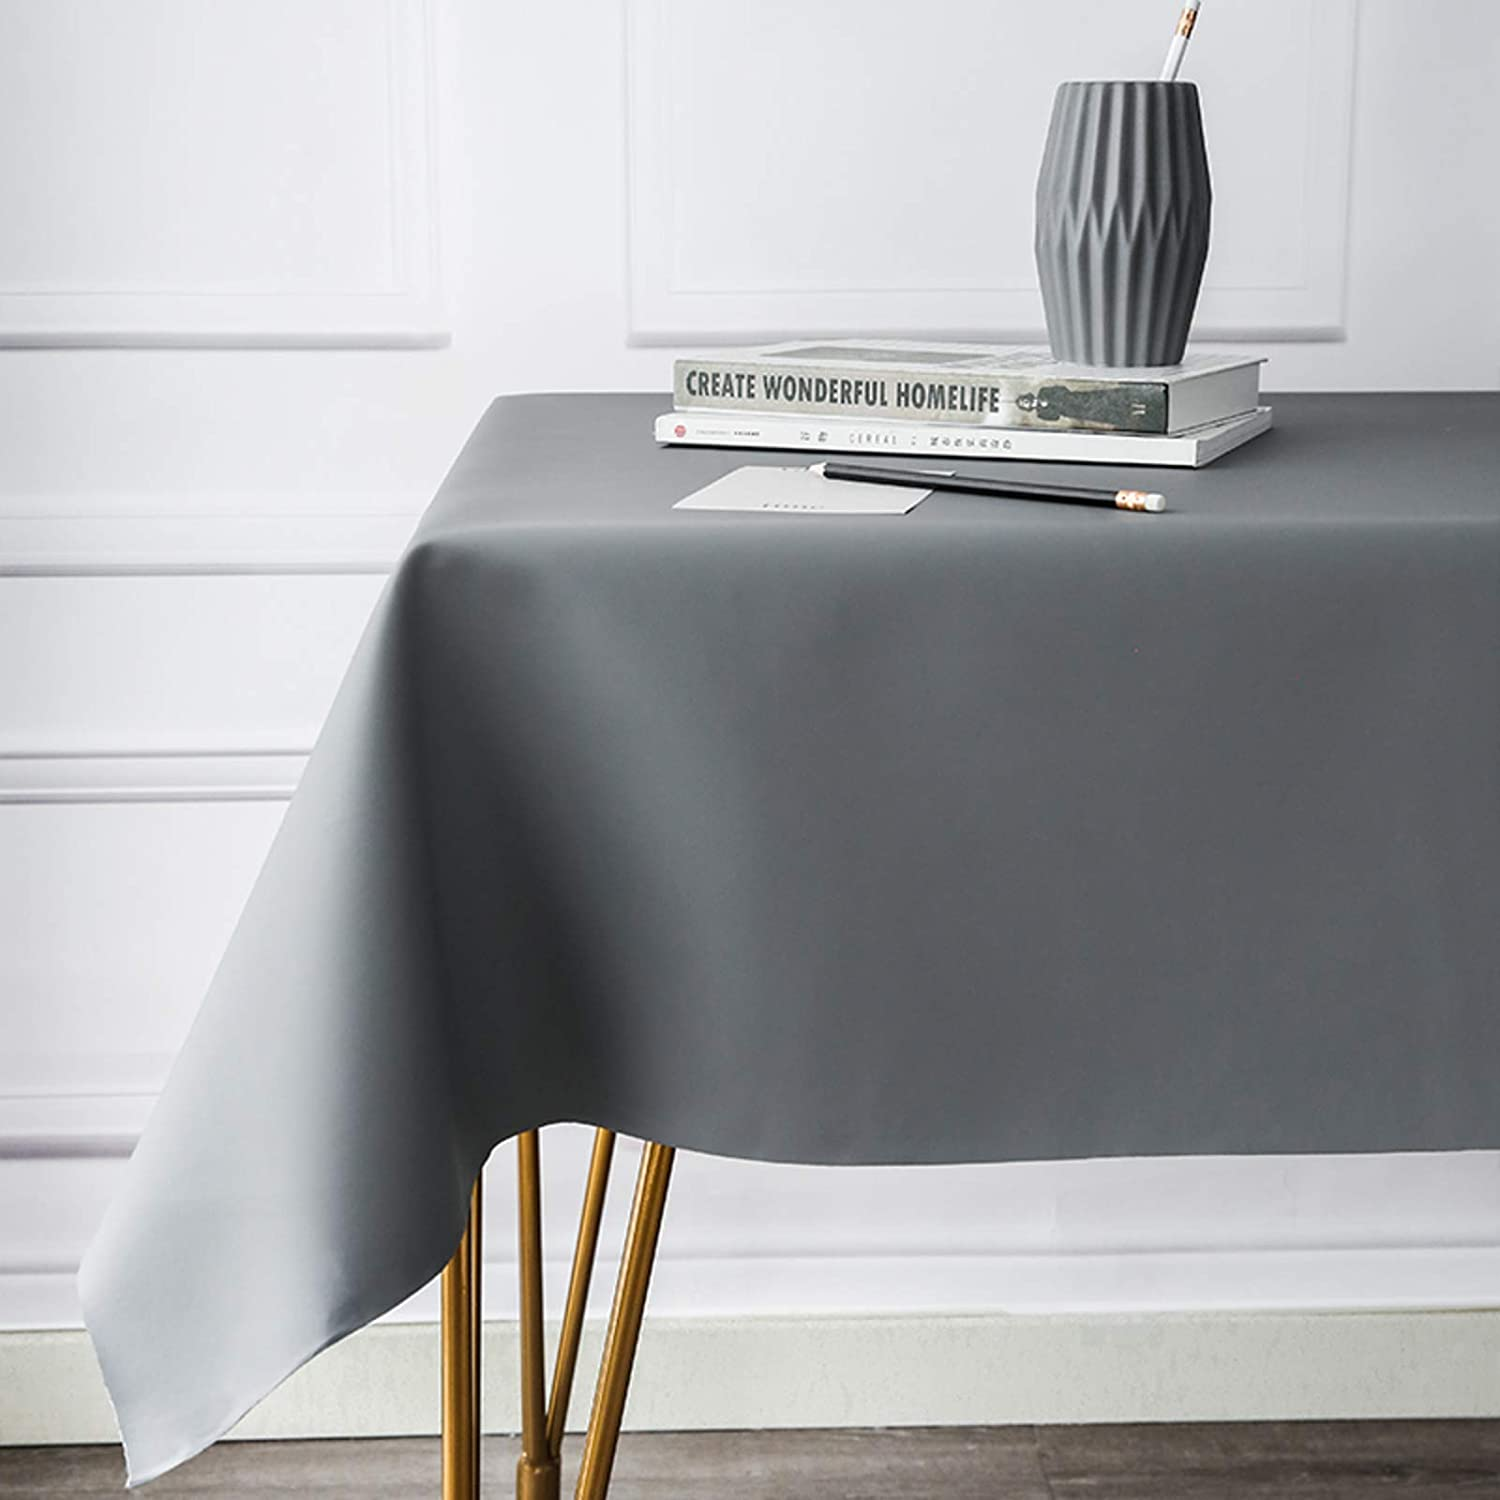 QSCV Oil-Proof Spill-Proof Stain Pu Leather Rectangle Tablecloth Direct store Discount mail order